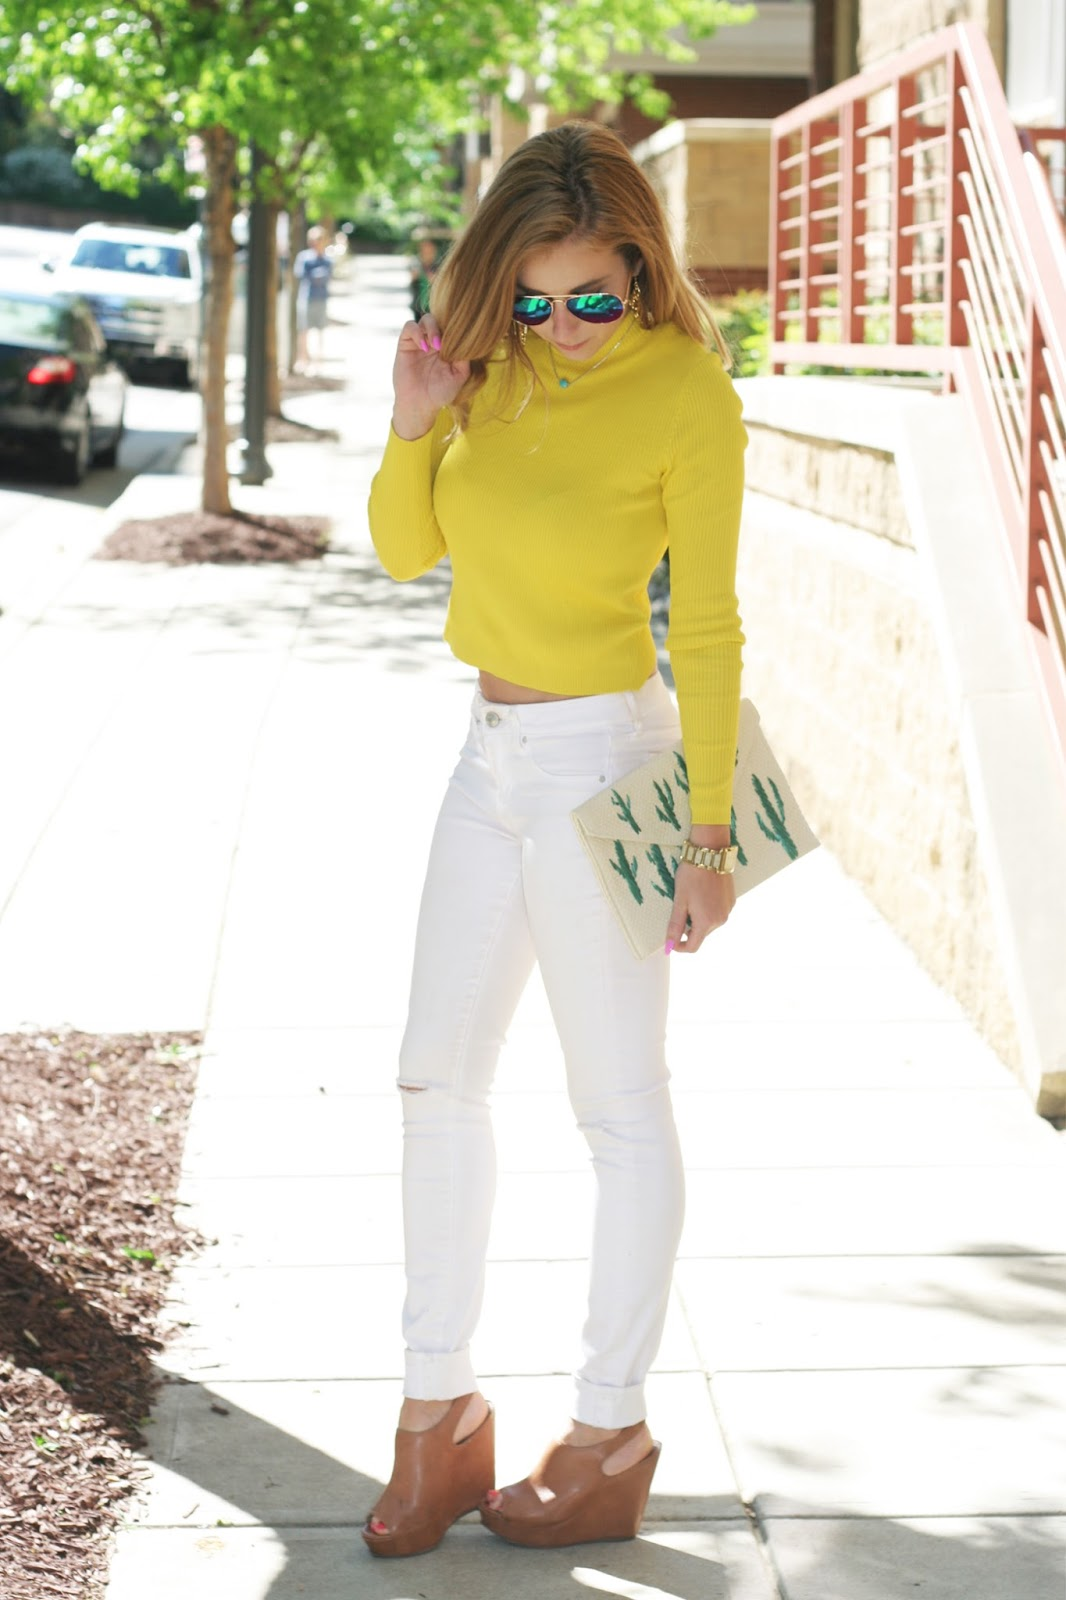 Spring-summer-street-style-mirrored-sunglasses-crop-top-clutch-white-jeans